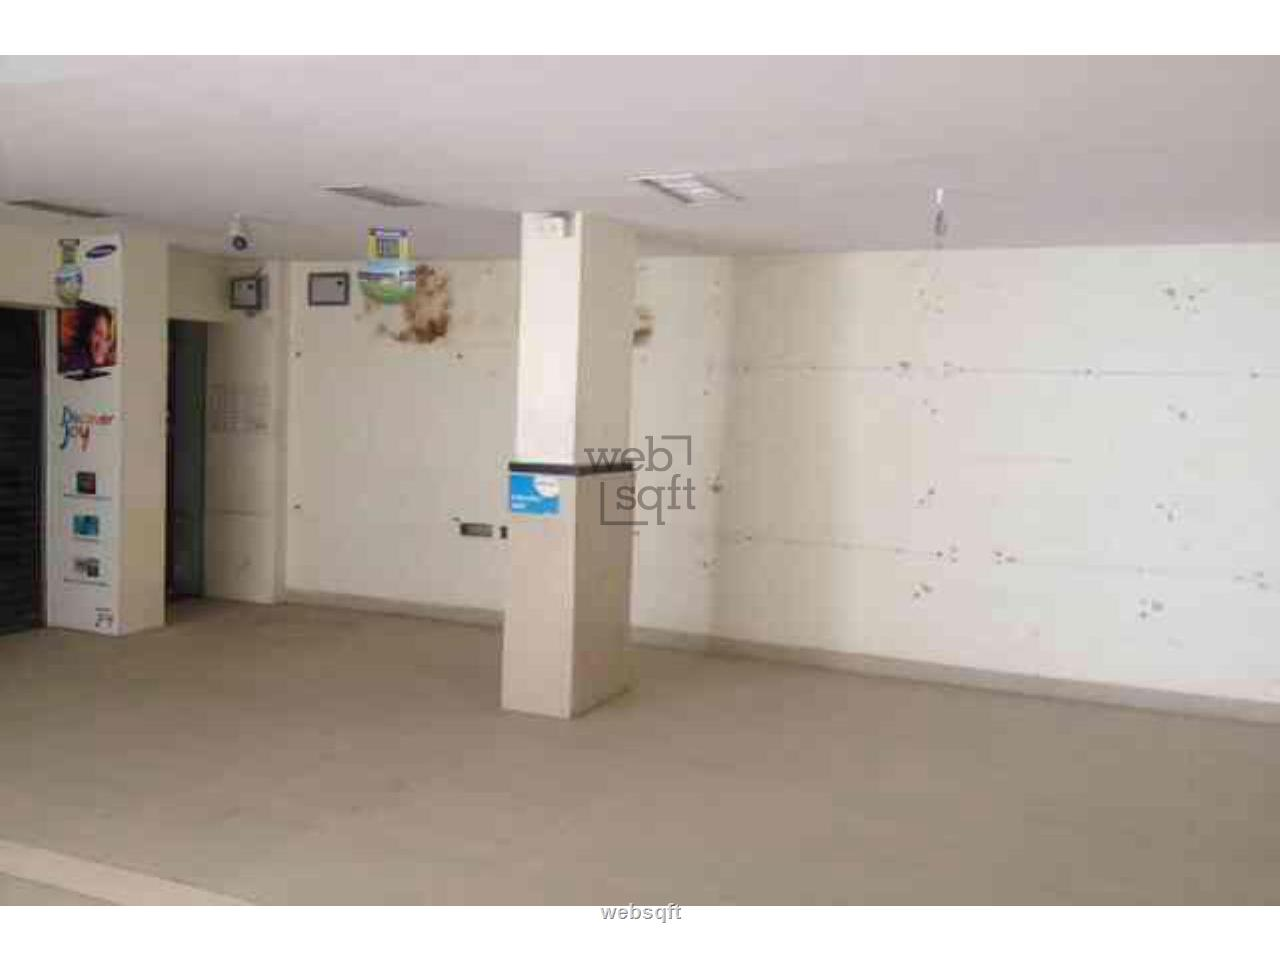 Websqft - Commercial Retail showroom shop - Property for Rent - in 2250Sq-ft/KPHB Colony at Rs 112500